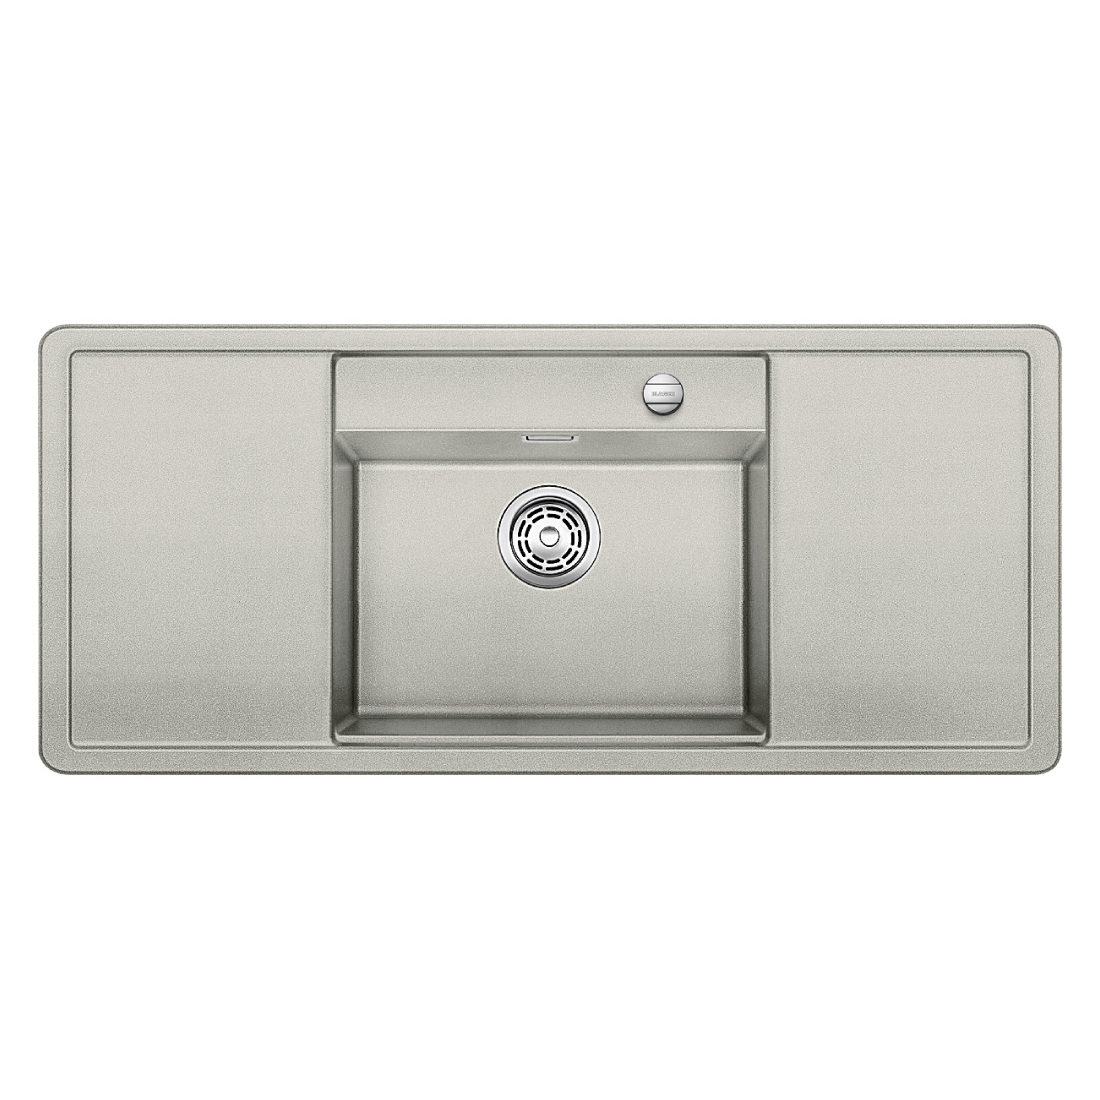 inset kitchen sink blanco alaros 6 s inset kitchen sink sinks taps 1870